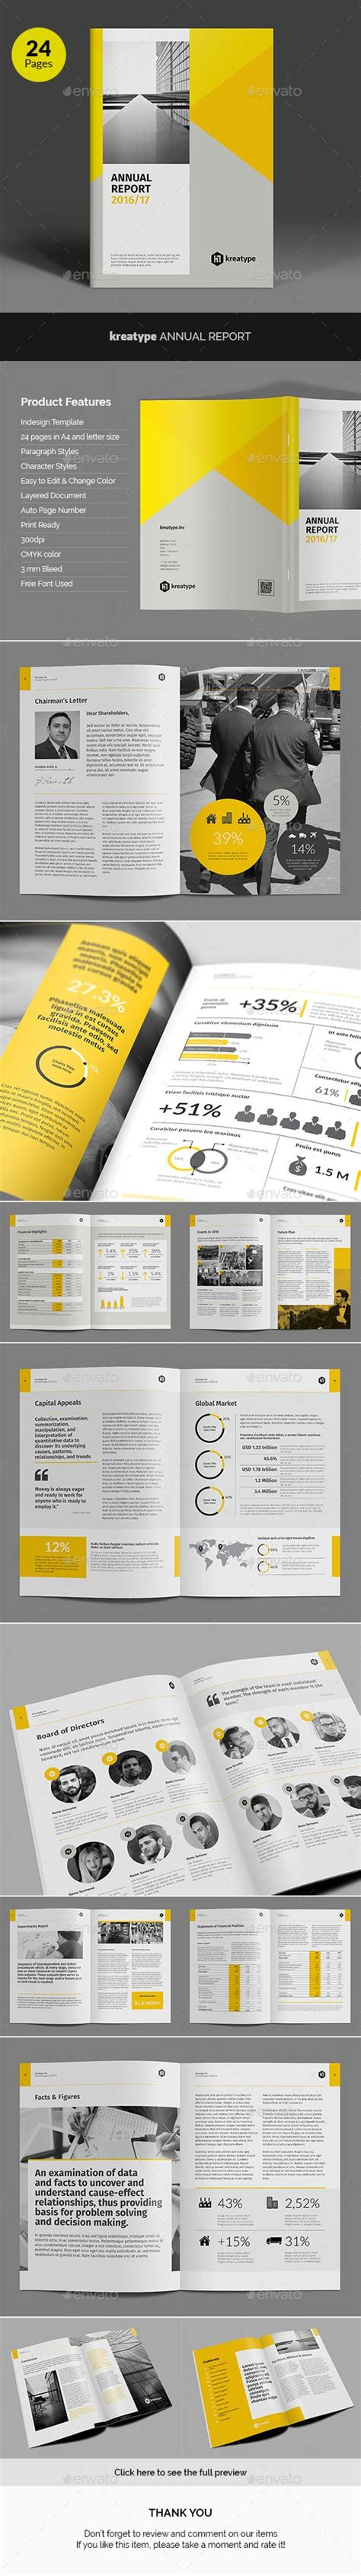 Https Graphicriver Net Item Divided Annual Report Template 13185075 Kreatype Annual Report Creative Design And Marketing